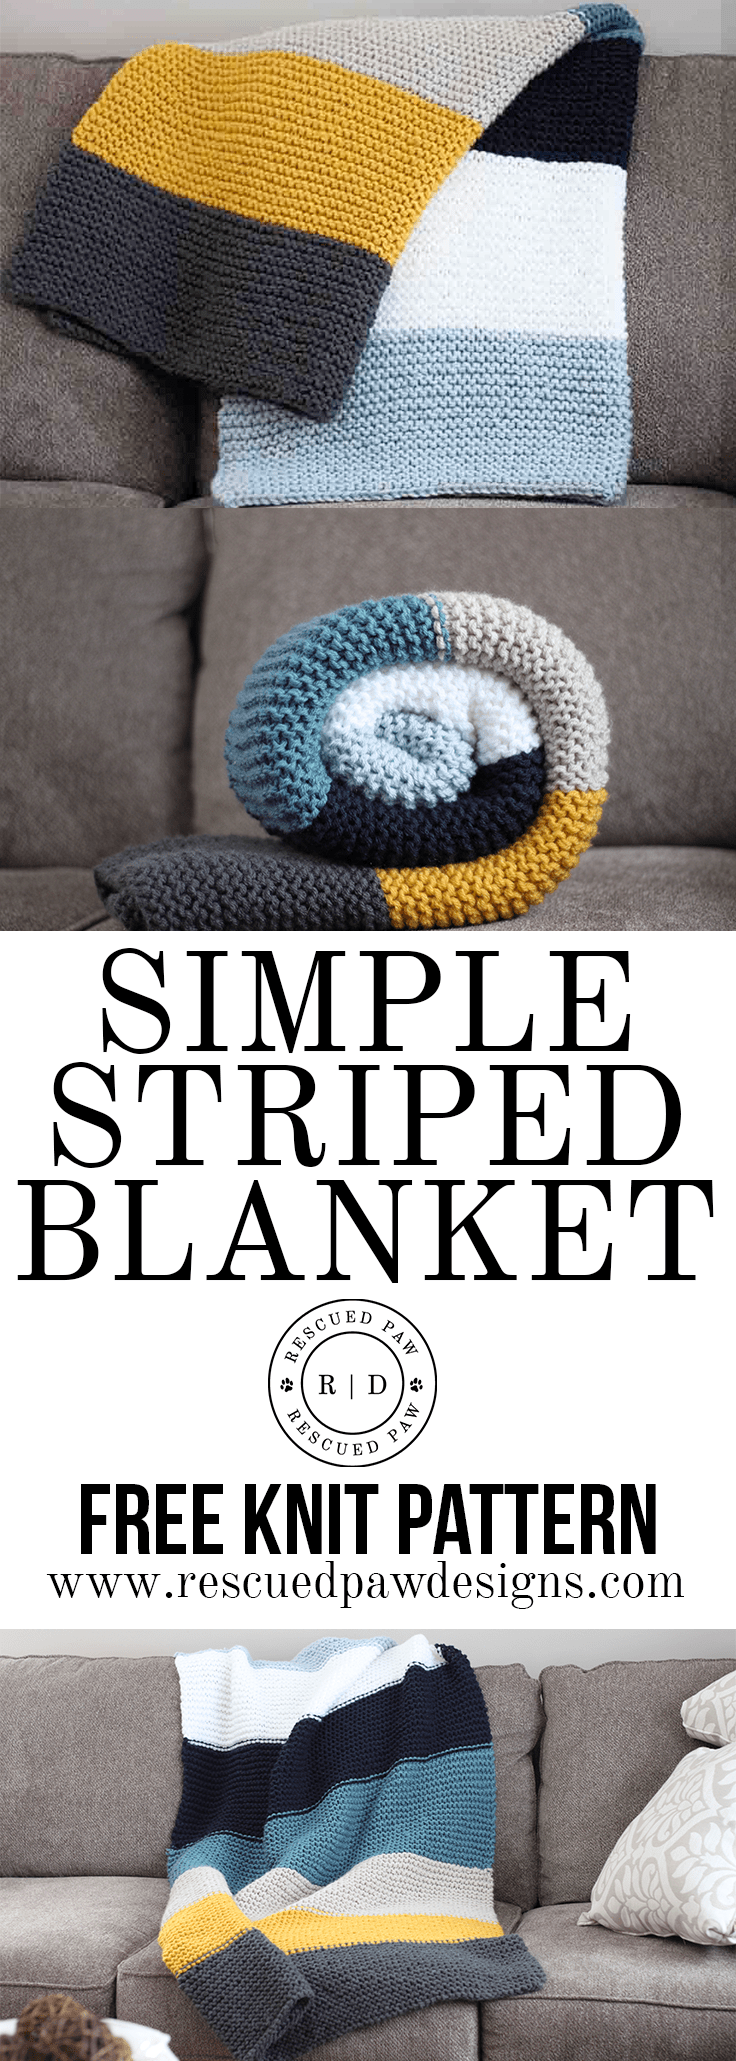 Simple striped knit blanket pattern knit patterns blanket and simple striped knit blanket pattern bankloansurffo Image collections